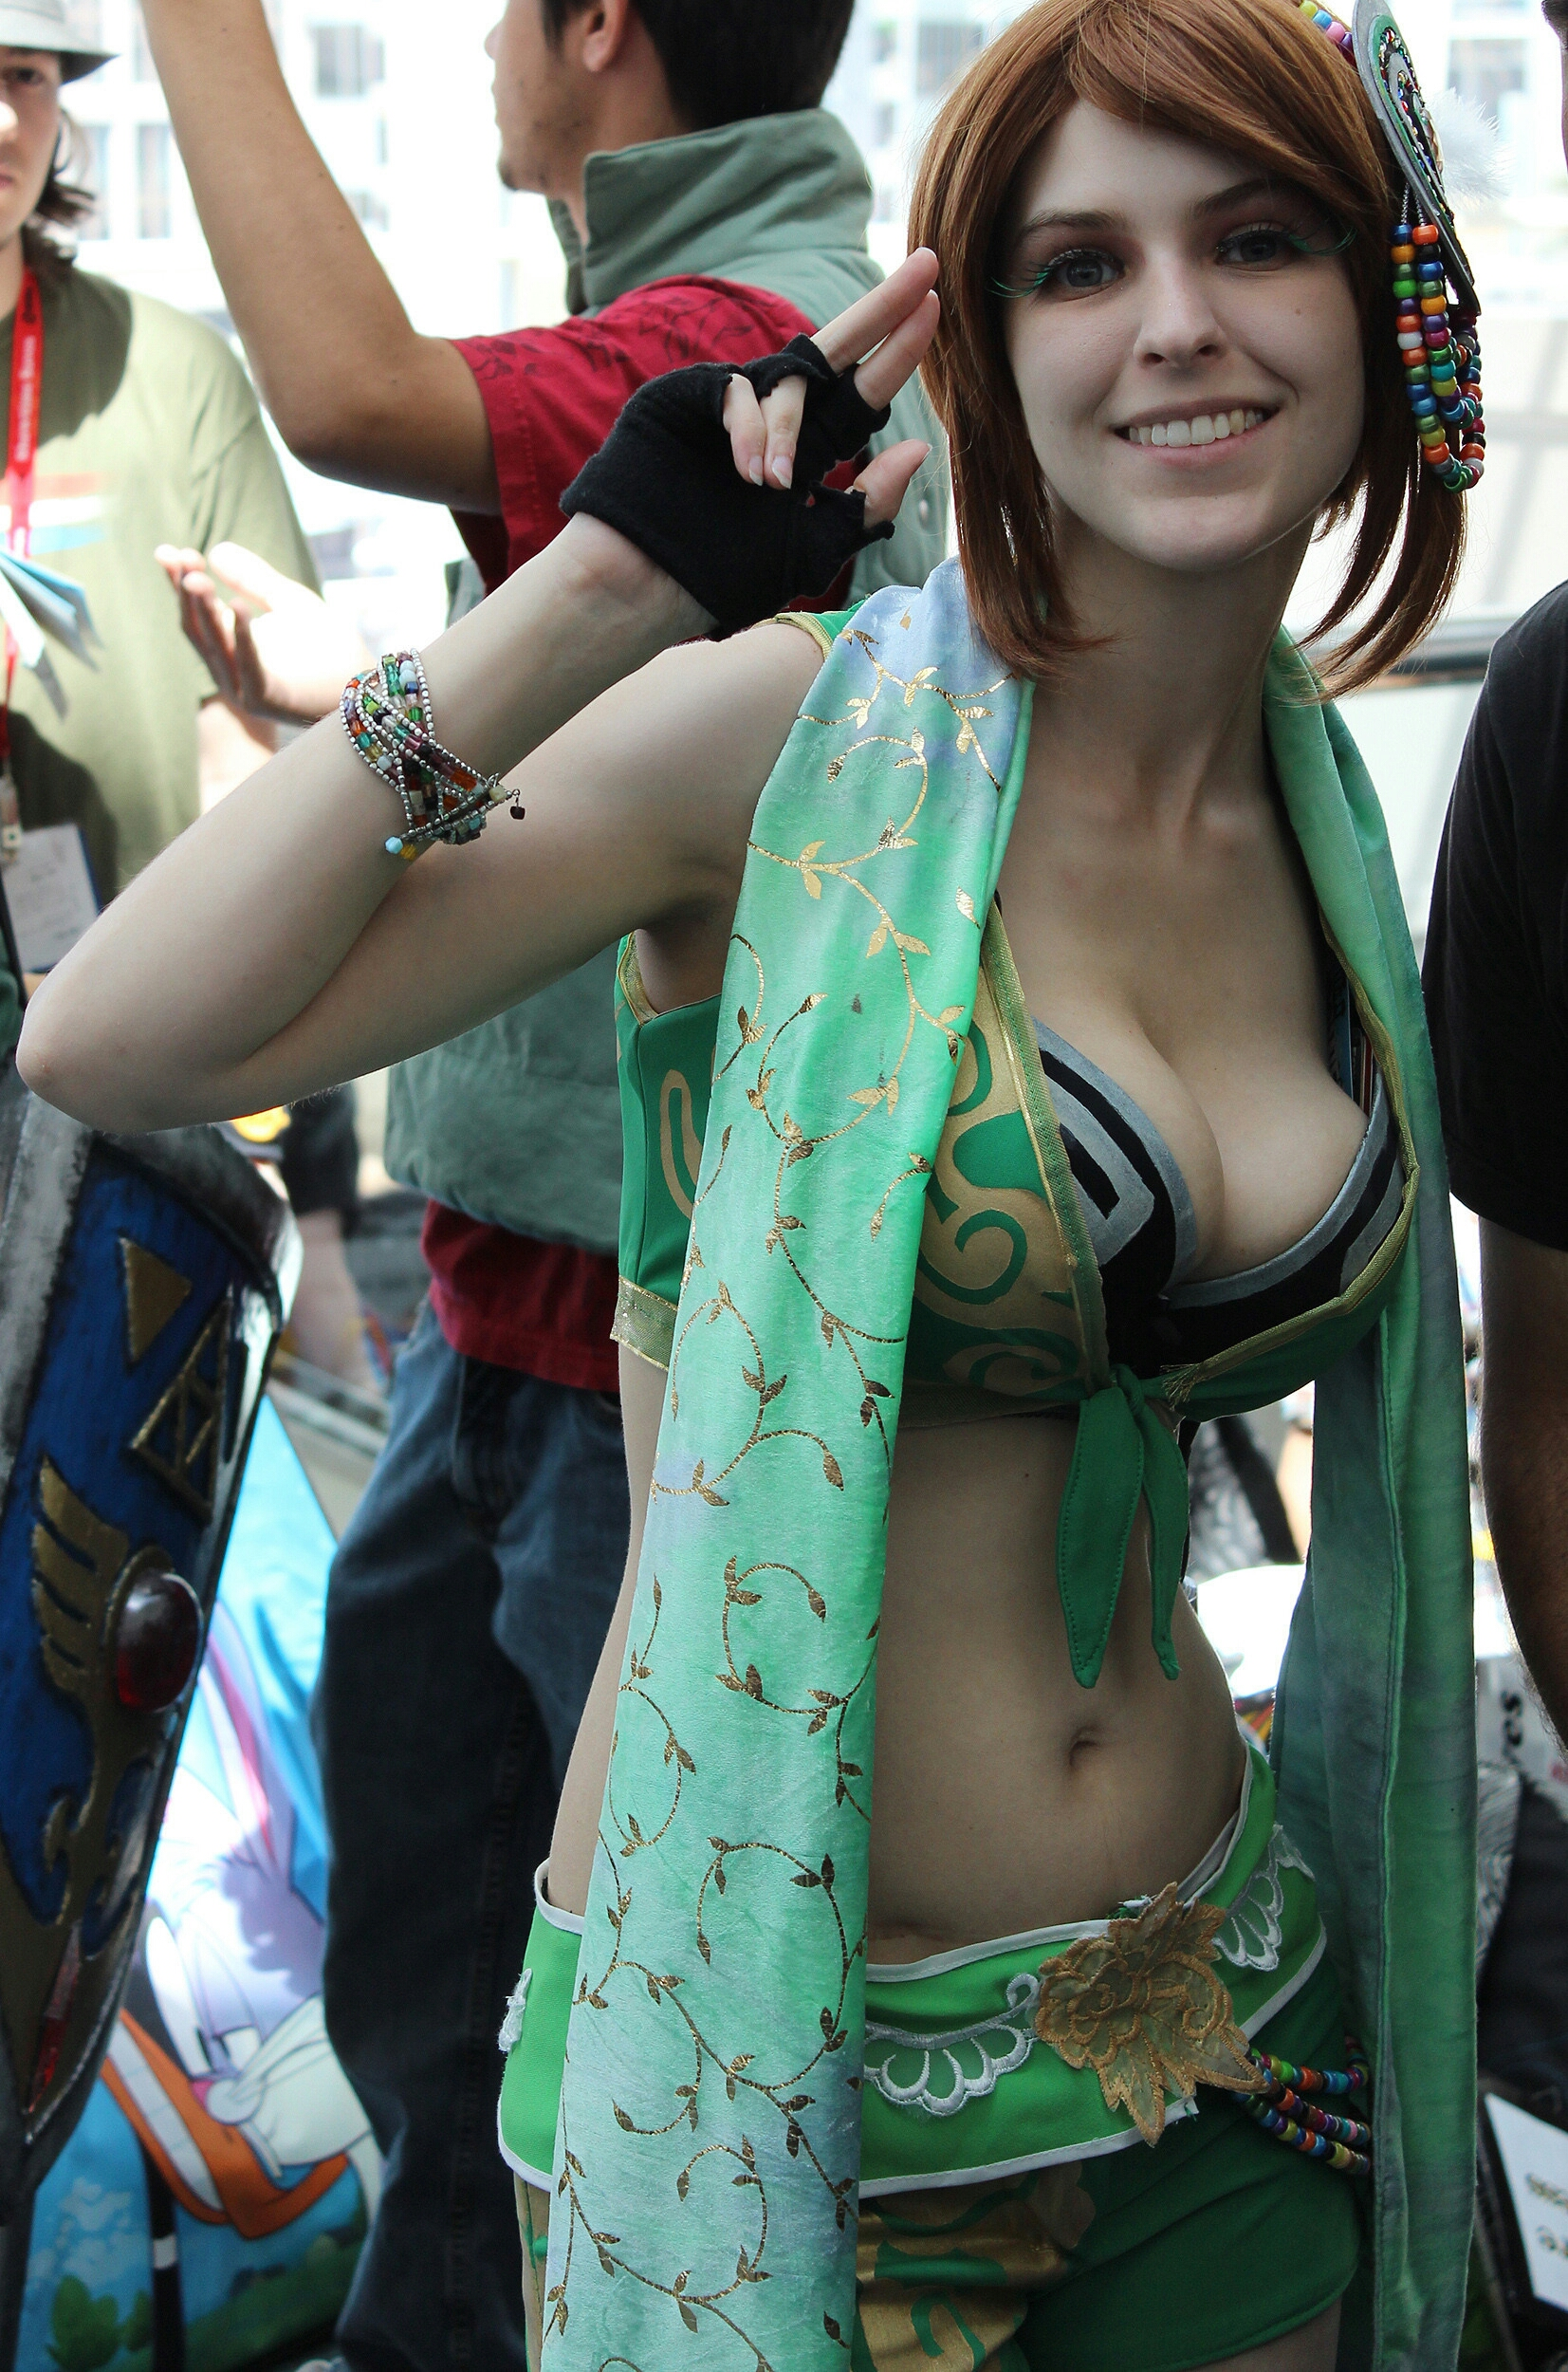 amateur cosplay event porn